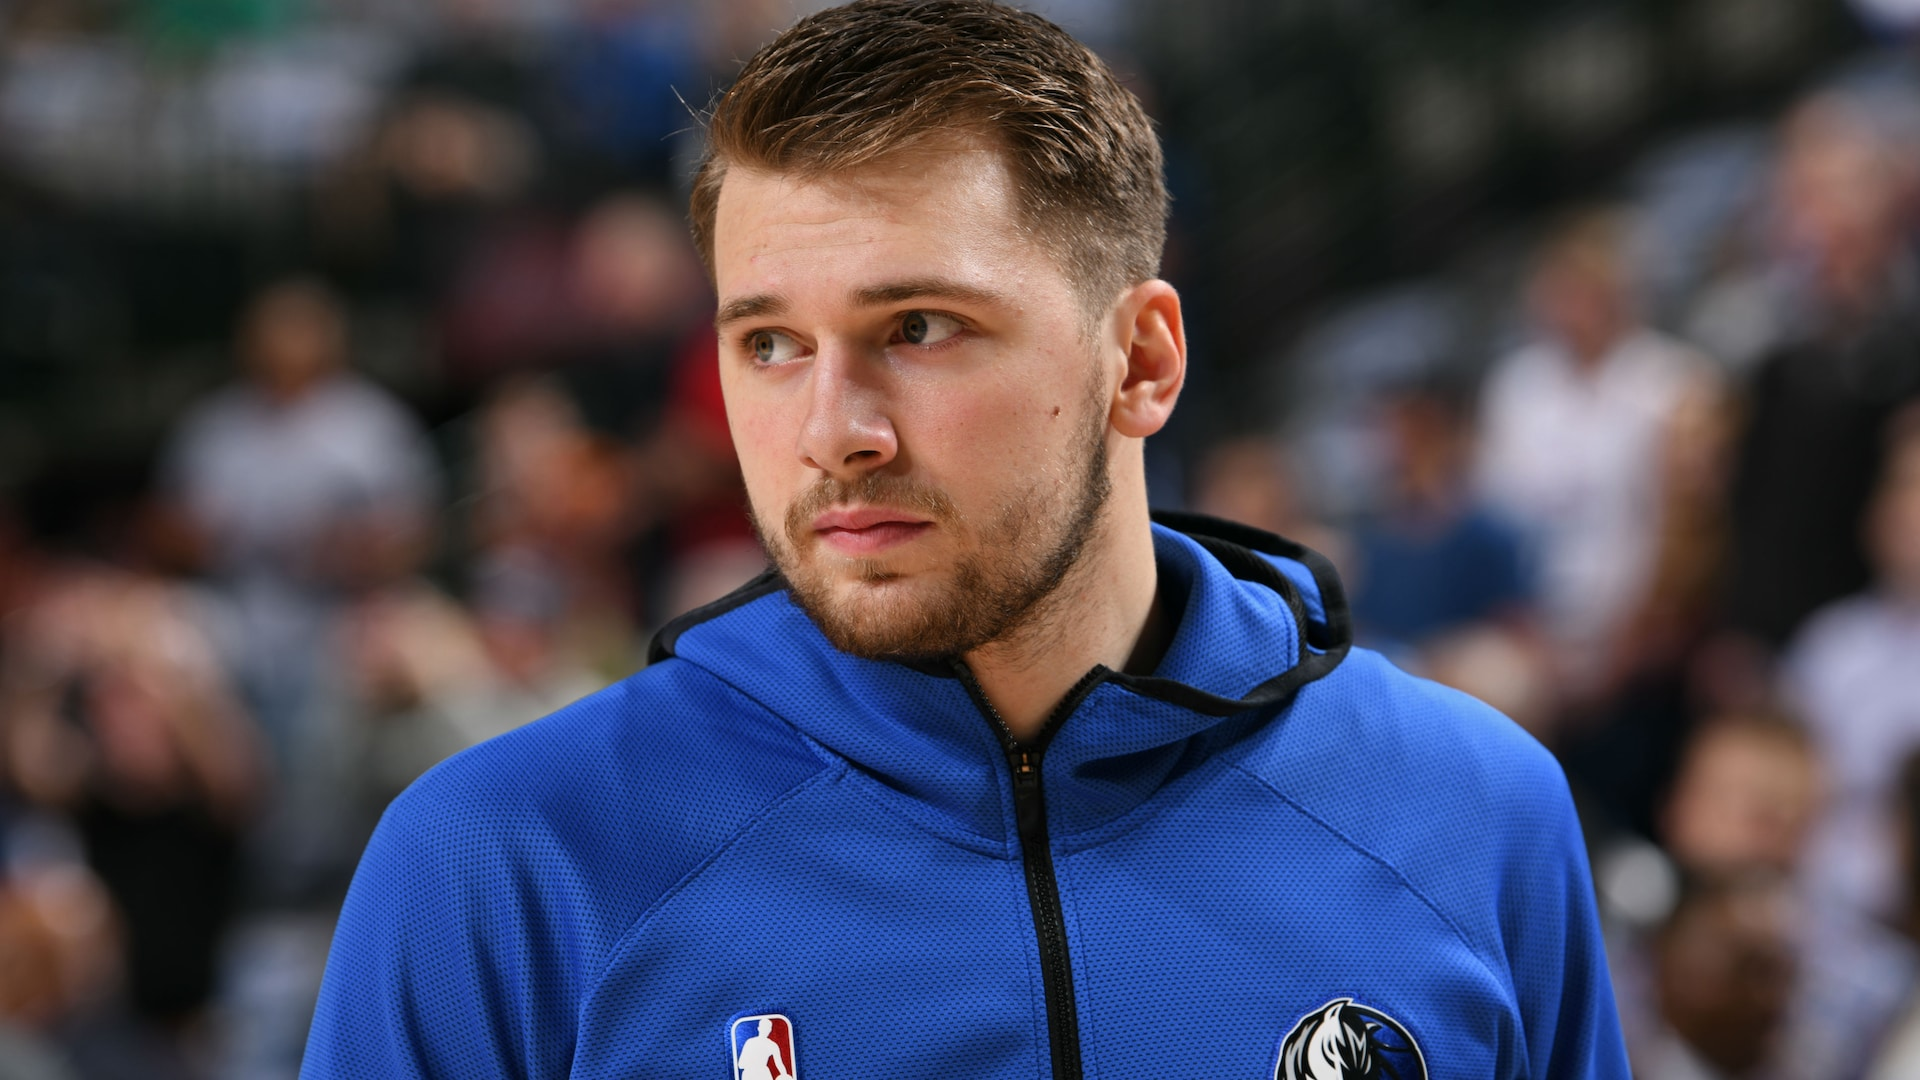 Mavericks star Luka Doncic sprains right ankle in practice